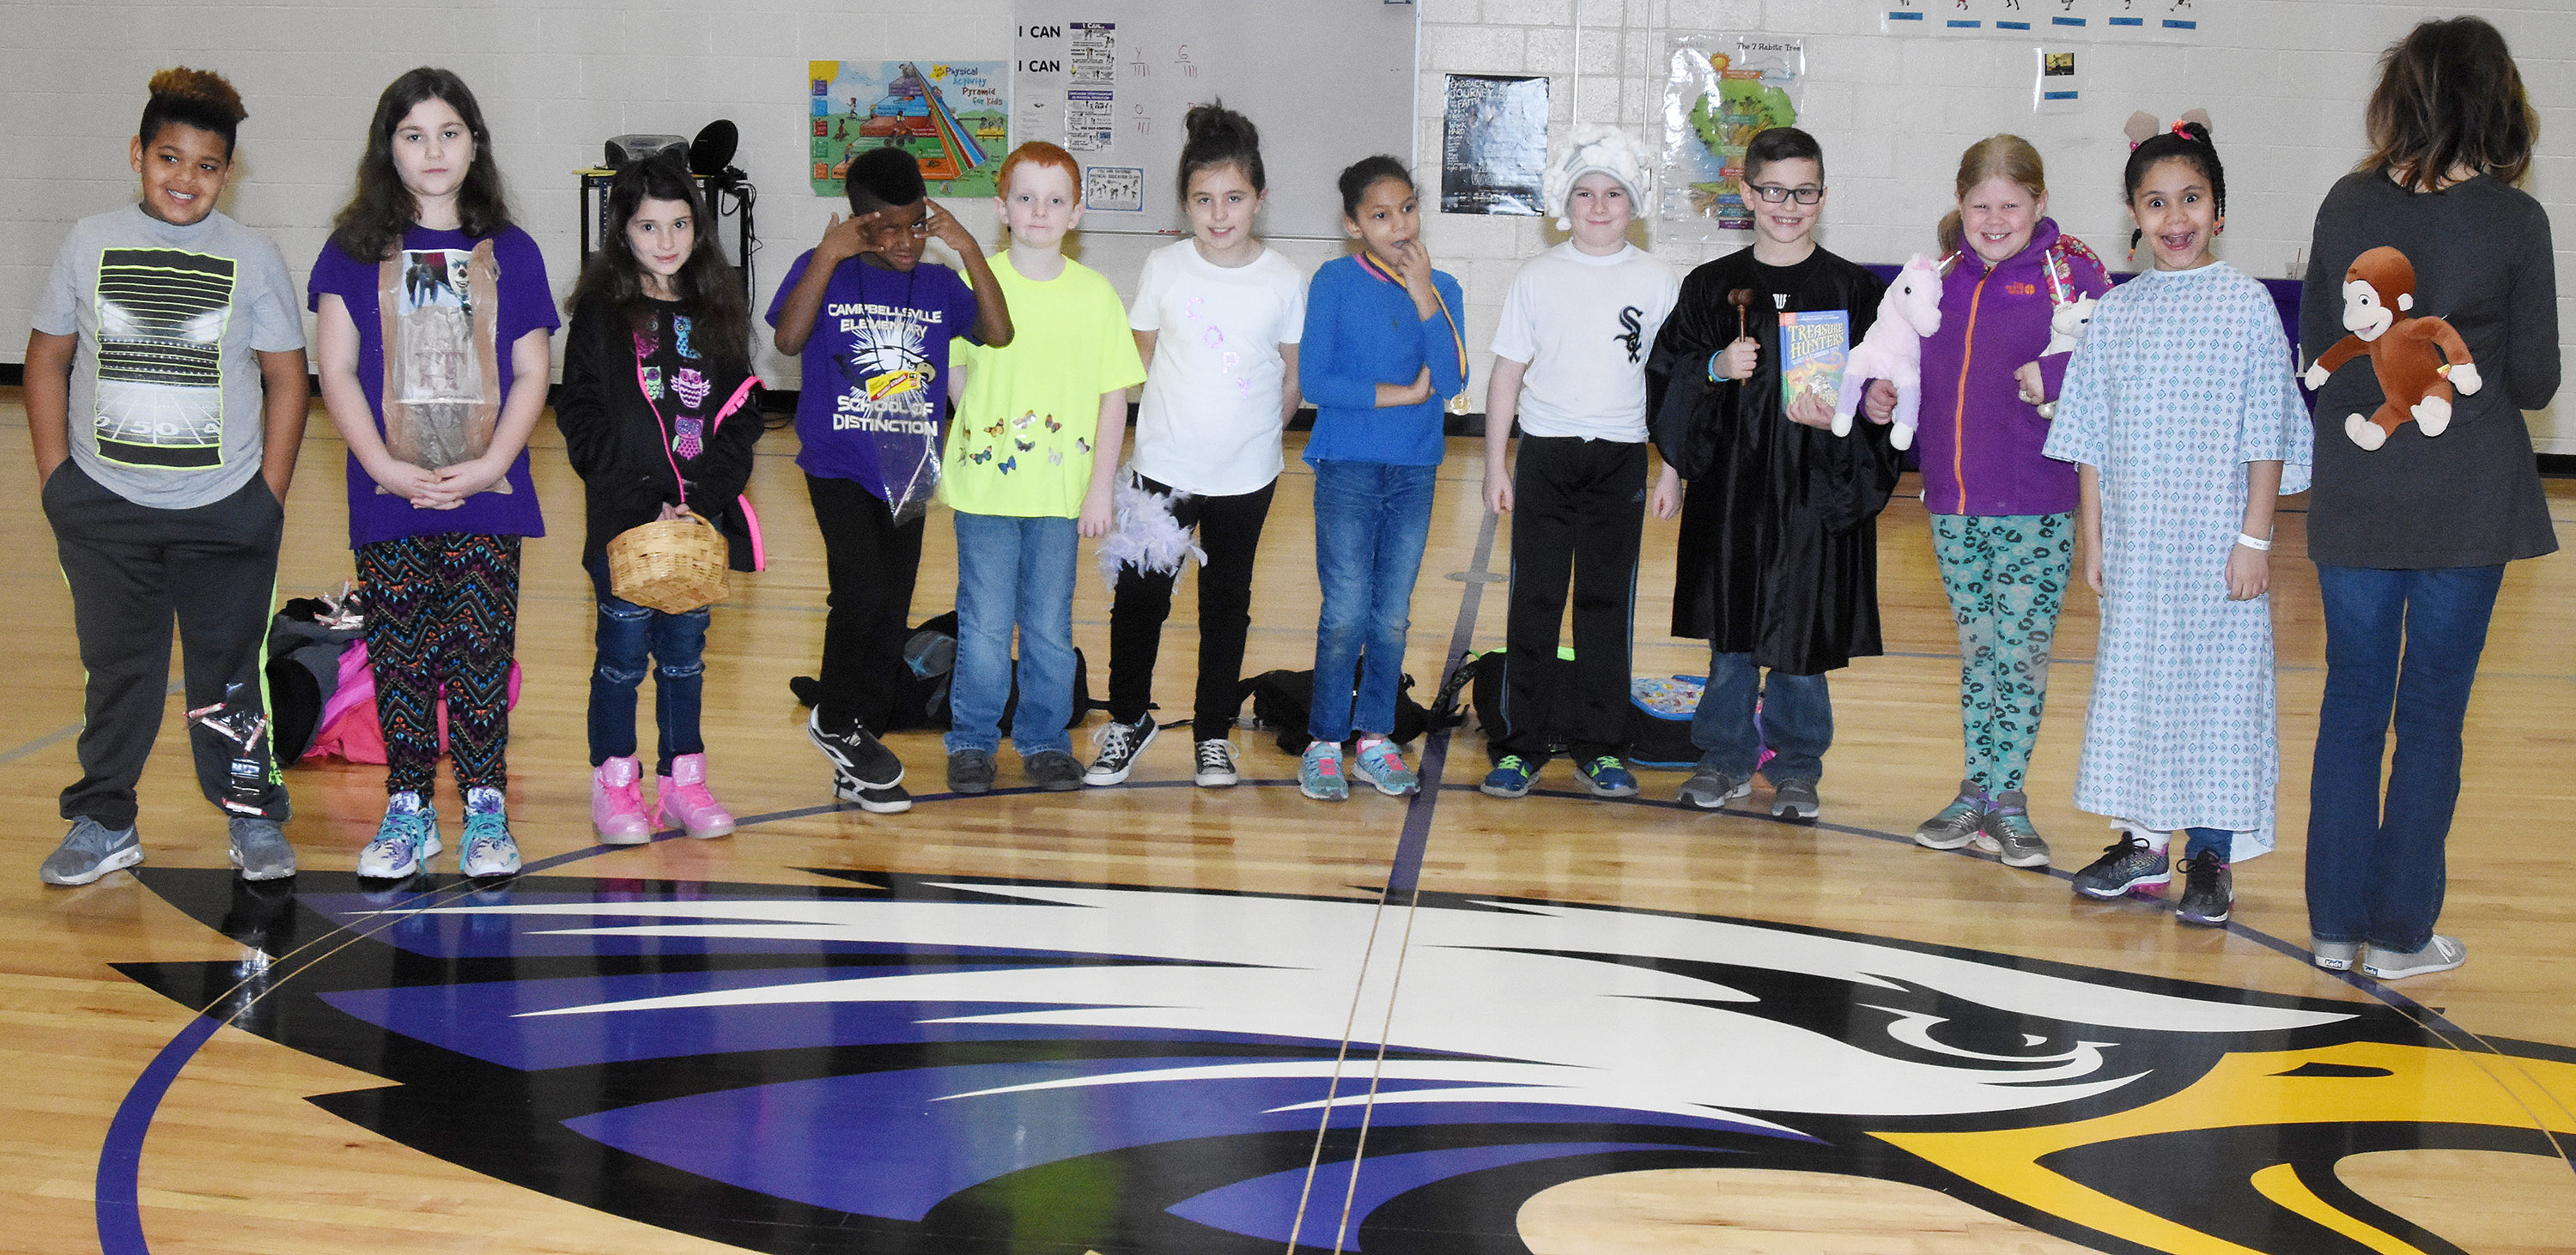 CES third-graders in Marcia Sharp's class dress to represent their favorite idioms. From left are Jayden Moore, Abigail Hoppes, Ava Taylor, Kae'vin Spaulding, Gavin Martin, Annabelle Brockman, Malia Thompson, Stephen Green, Tye Rhodes, Lily Coots, Alex Wilson and teacher Marcia Sharp.